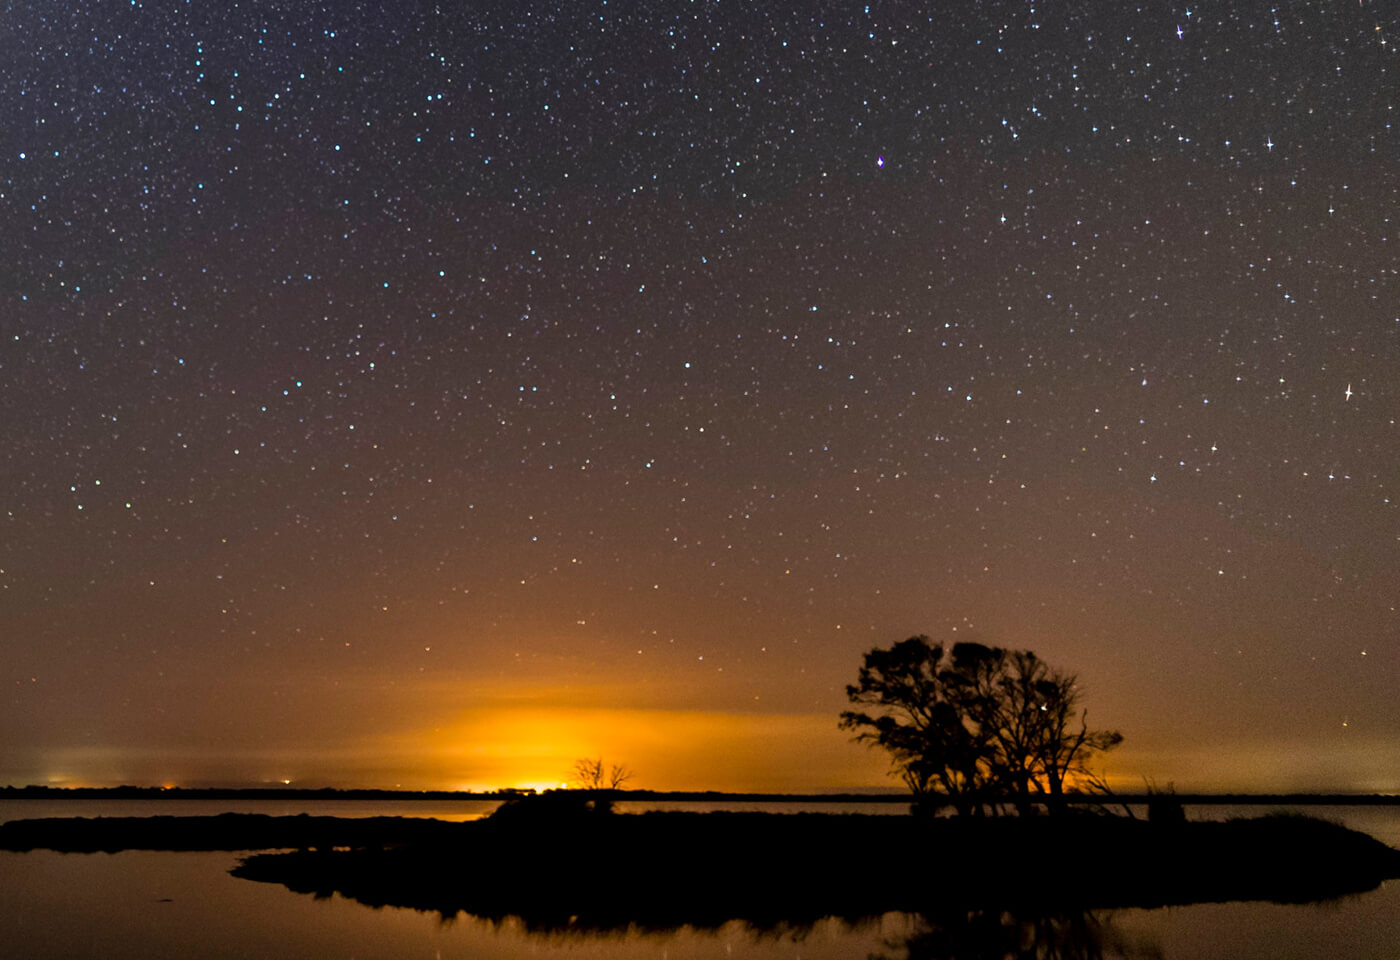 Astro photography by Jenn Cooper